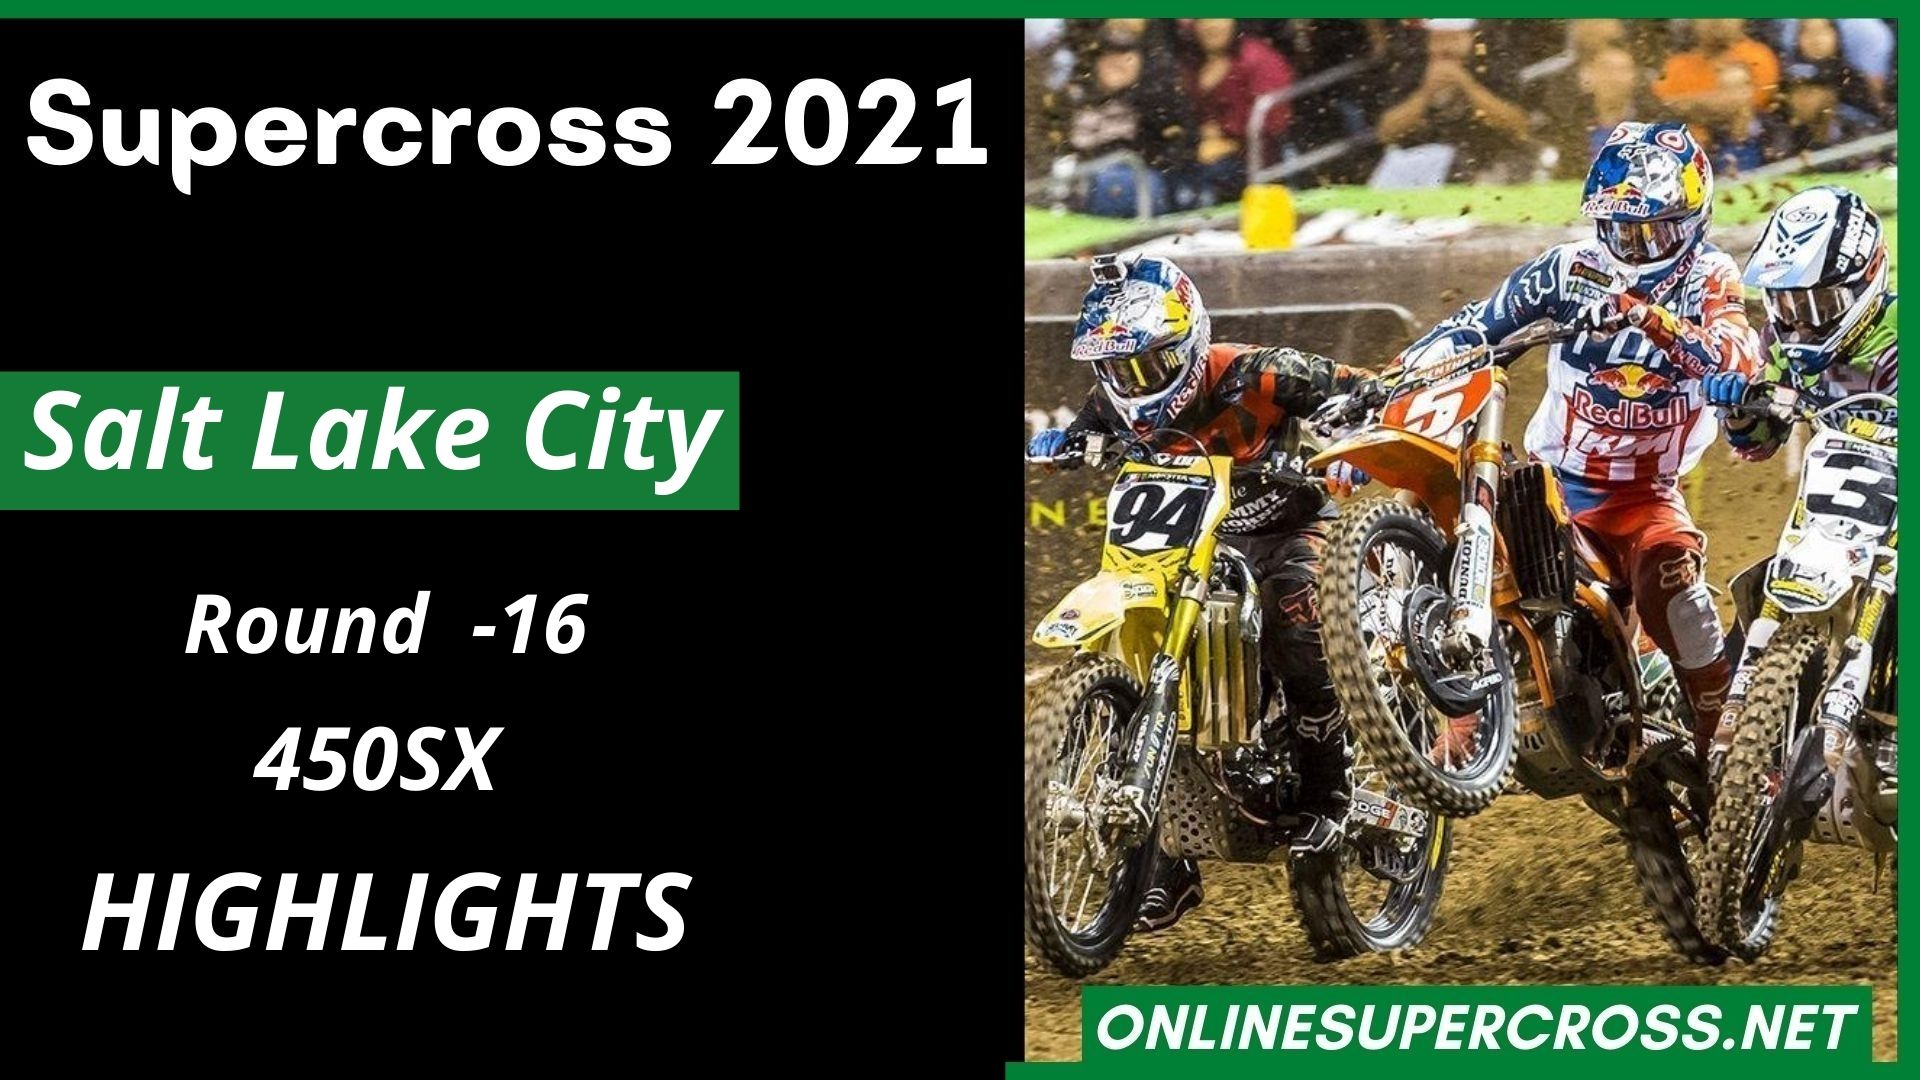 Salt Lake City Round 16 Supercross 450SX Highlights 2021